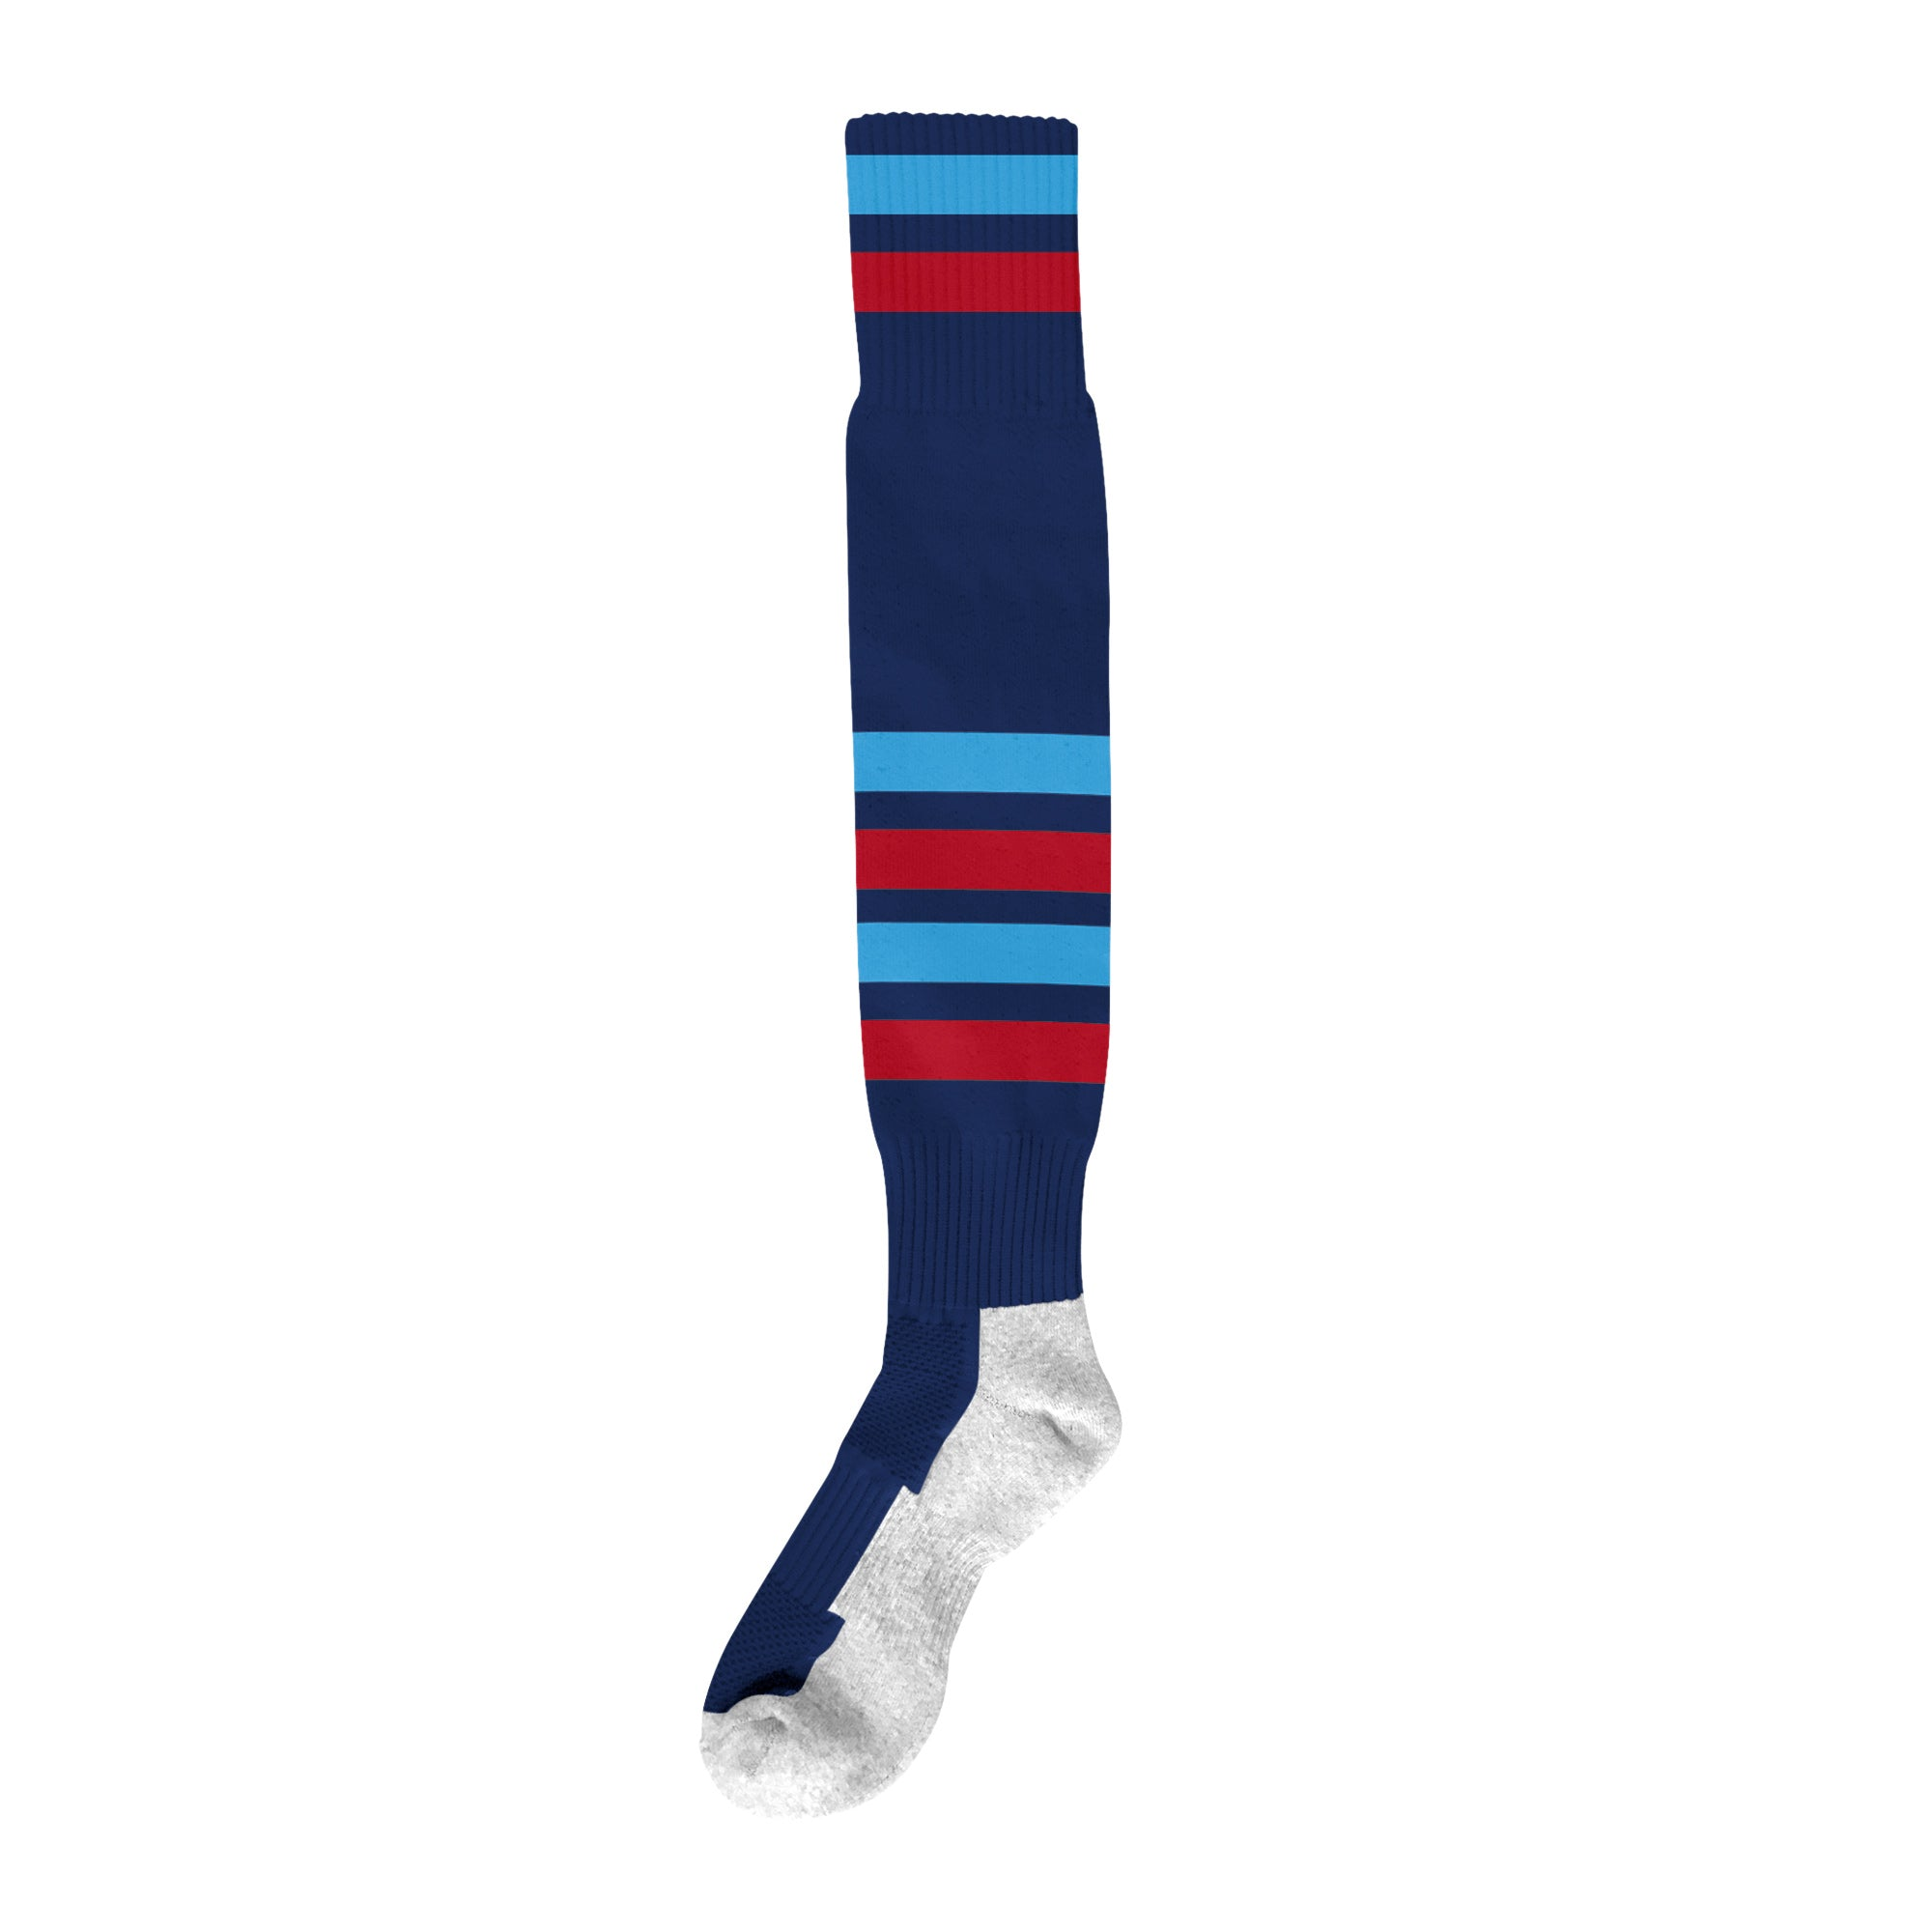 OGRFC Junior - Playing Socks